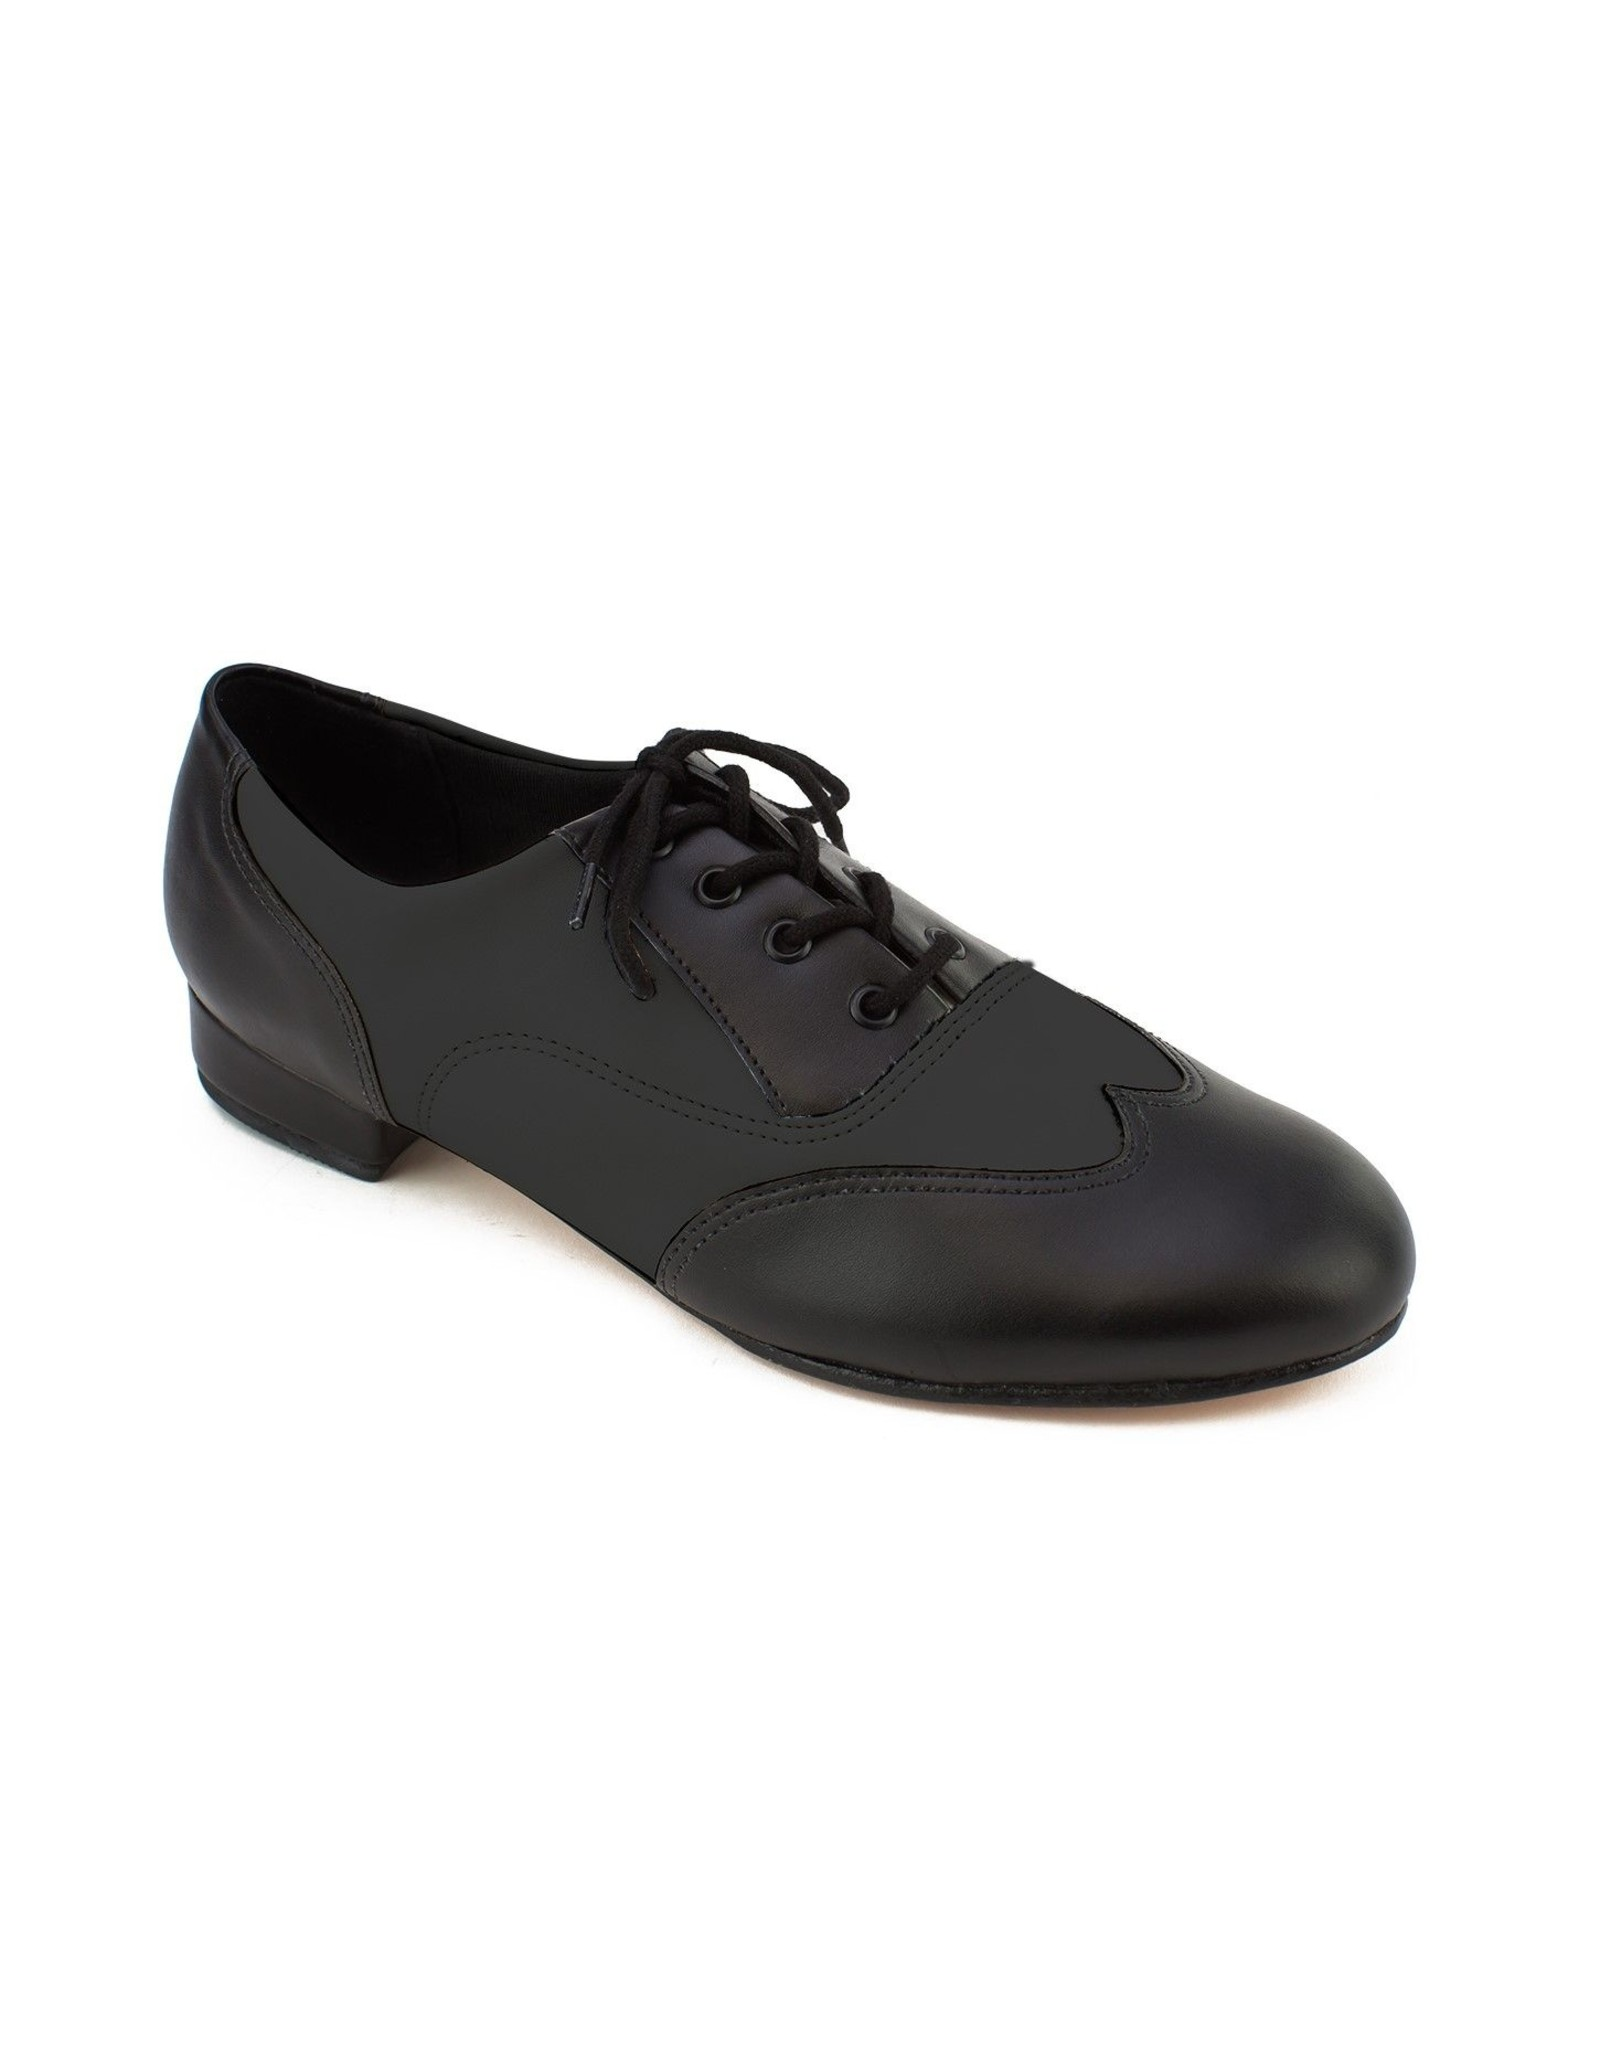 MEN'S SO DANCA CHARACTER SHOE WITH LEATHER SOLE